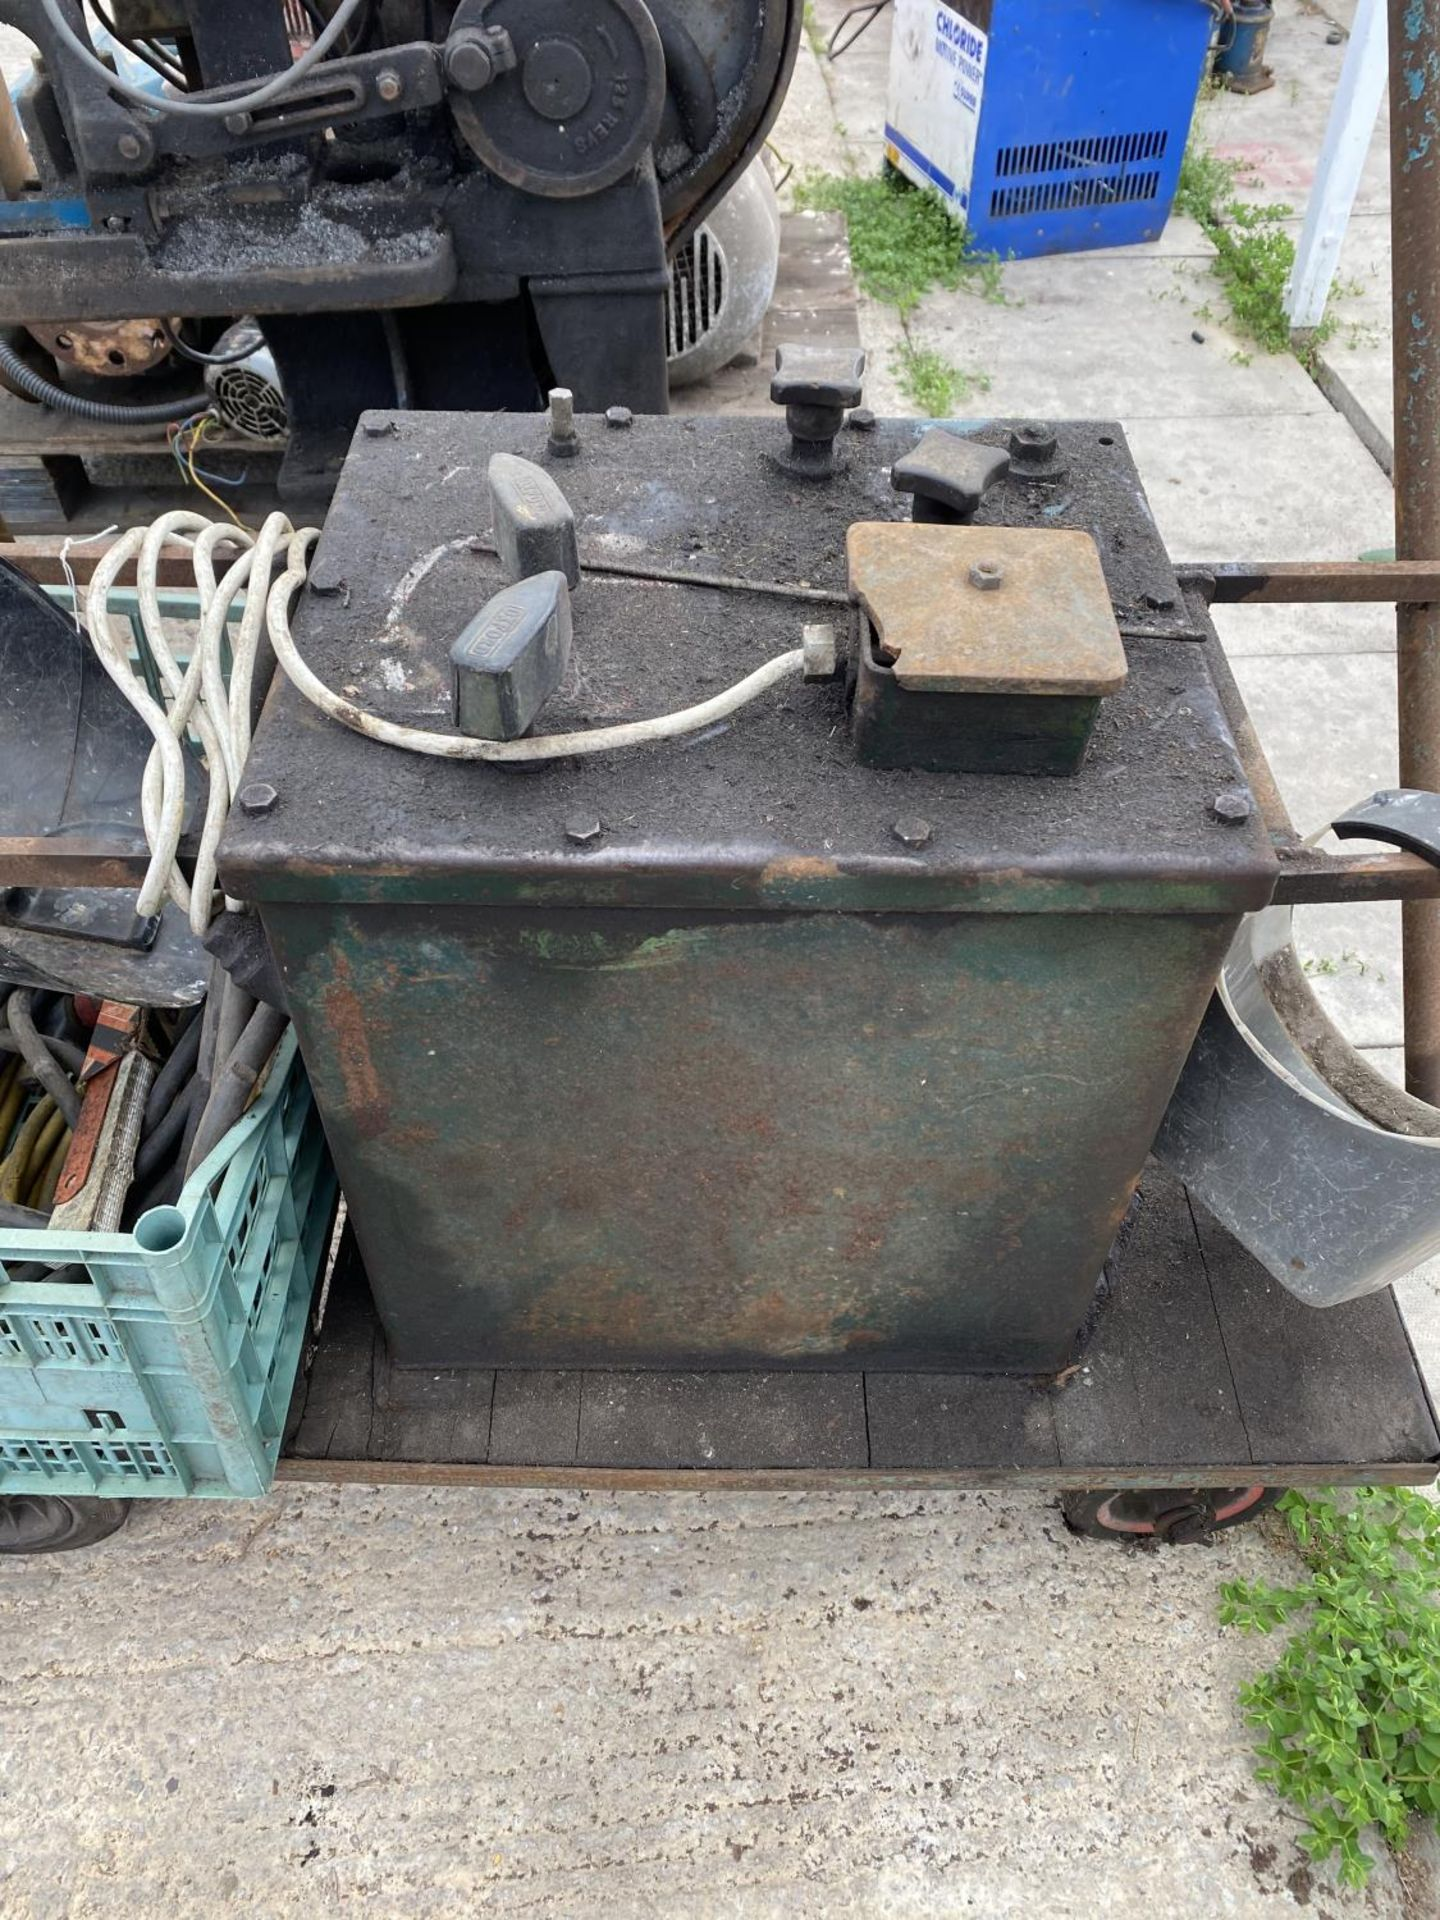 A MIG WELDER ON A TROLLEY BASE TO INCLUDE WELDER ACCESSORIES WORKING WHEN LAST USED+ VAT - Image 4 of 5